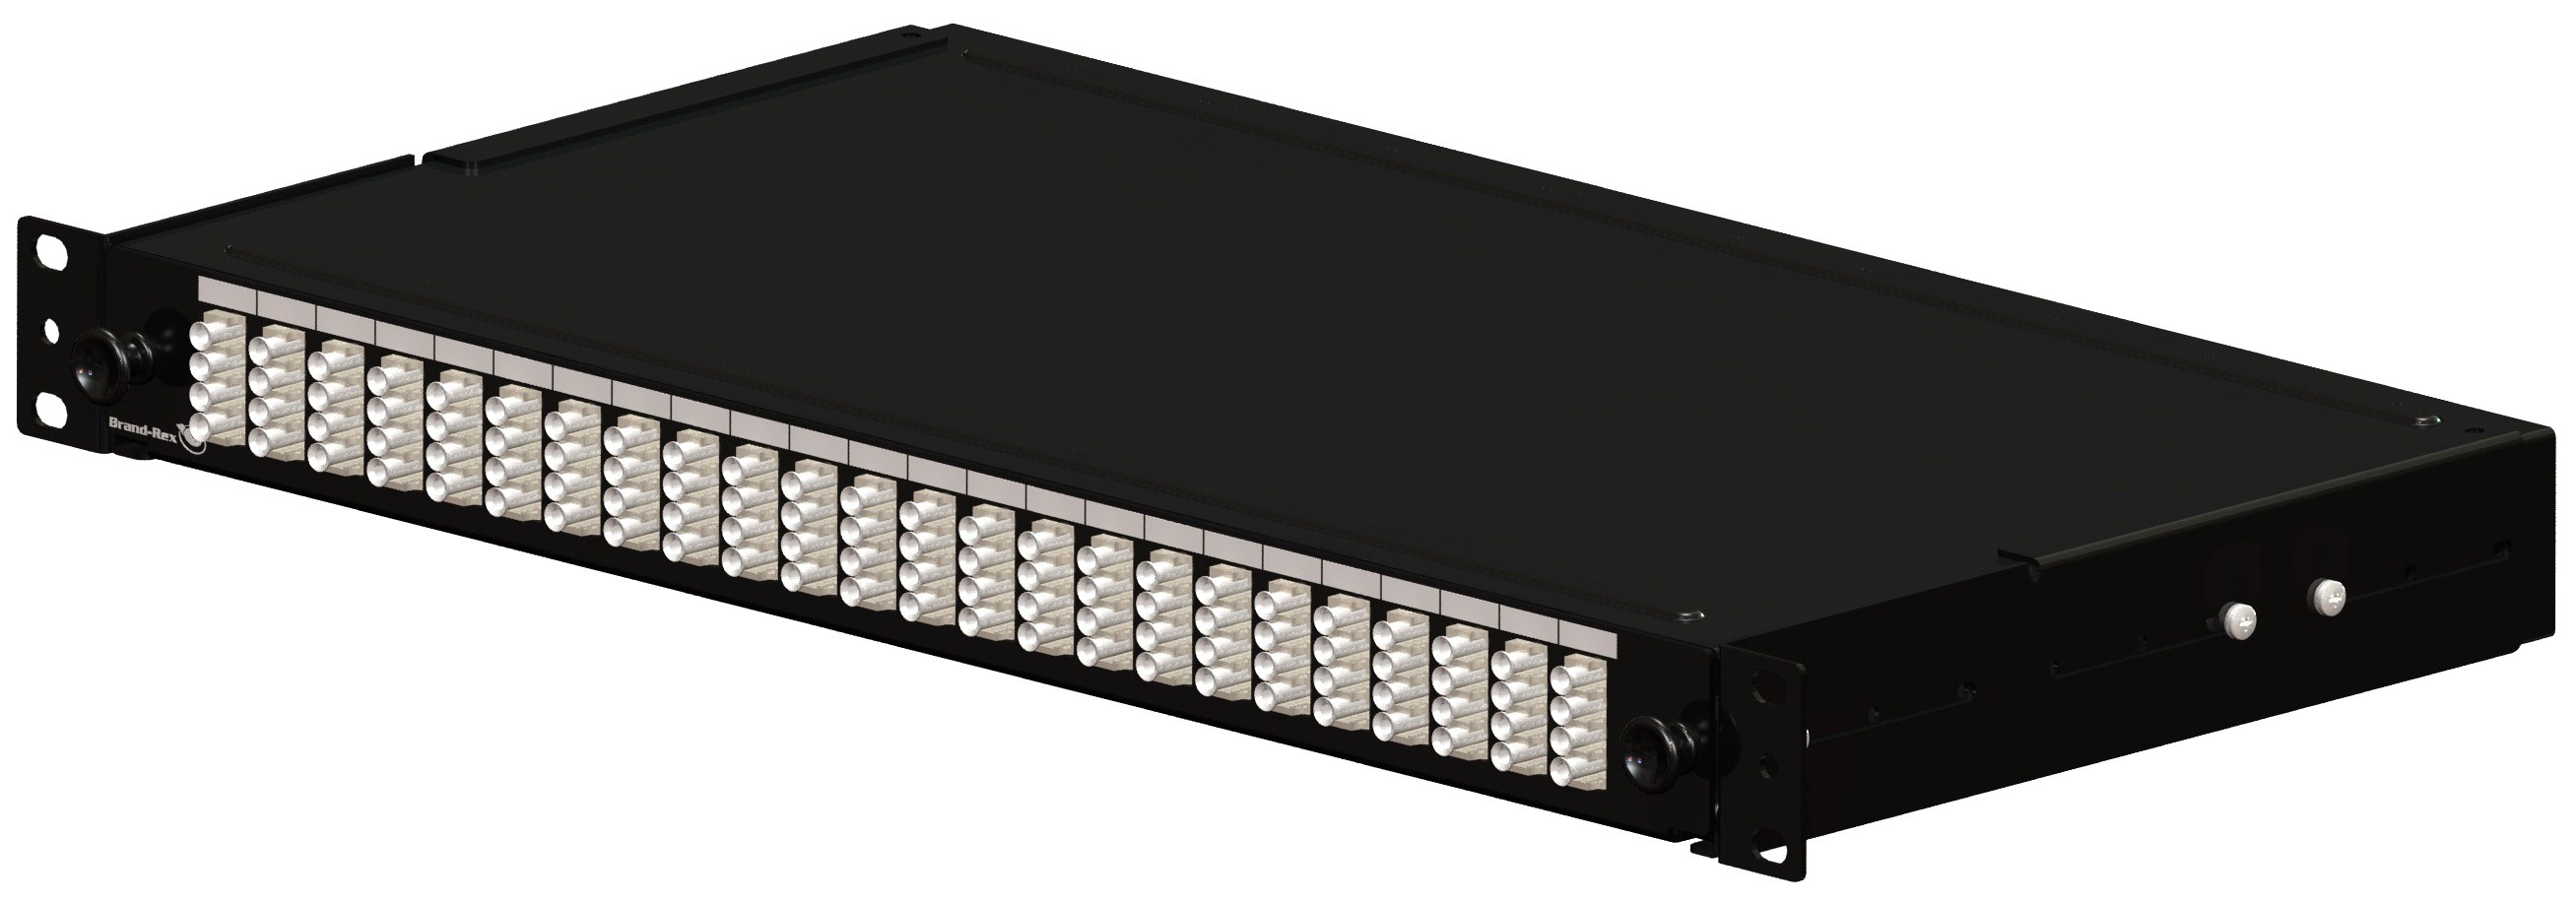 Brand_Rex Optical Panel loaded with 4 ST Multimode adapters